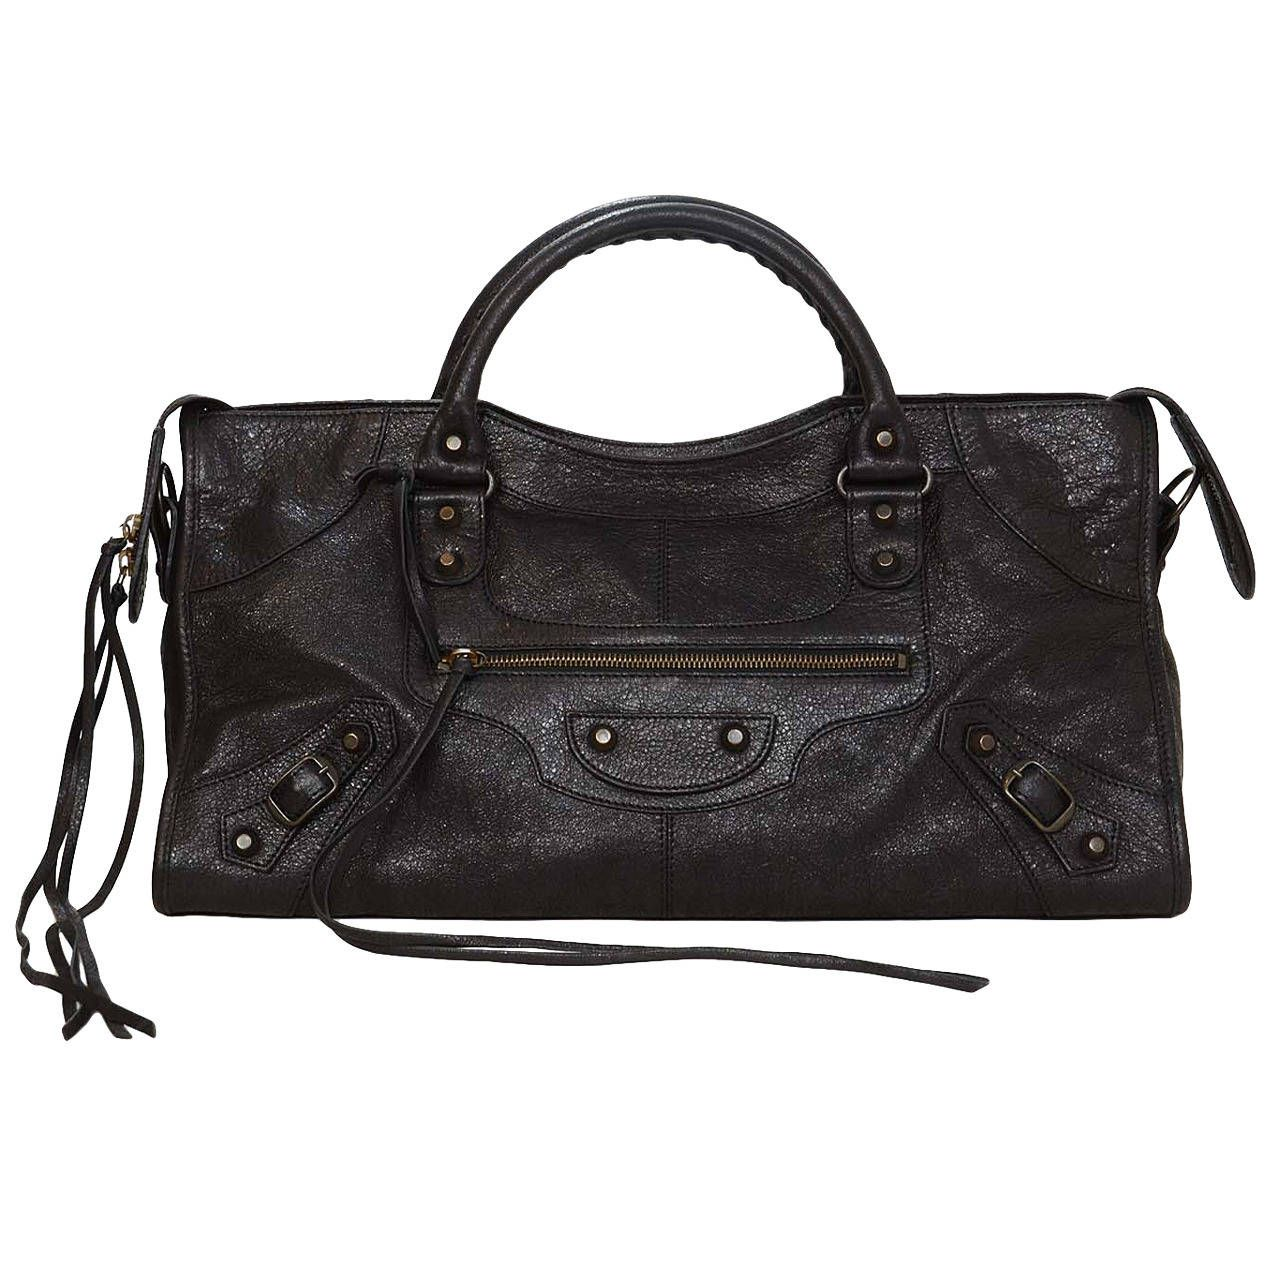 BALENCIAGA NWT Black Distressed Leather Classic Part Time Bag BHW rt. $ 1,875 | From a collection of rare vintage shoulder bags at https://www.1stdibs.com/fashion/handbags-purses-bags/shoulder-bags/